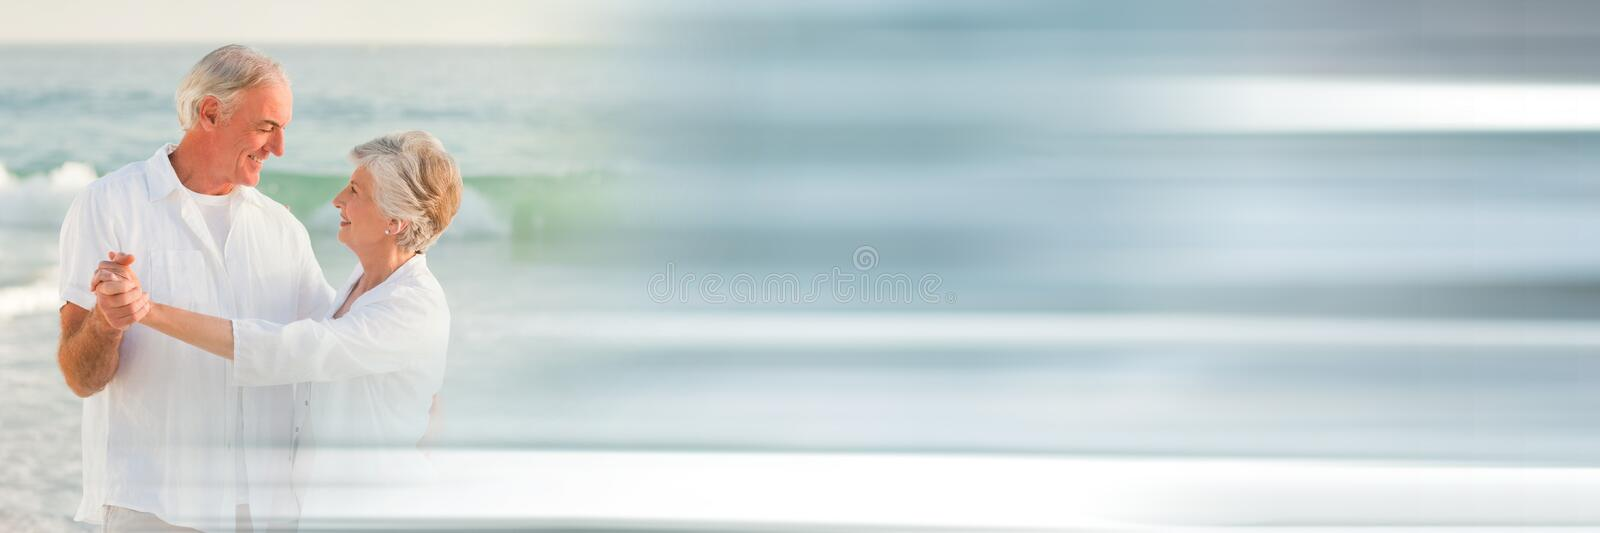 Elderly couple dancing on beach with blurry grey transition royalty free stock images